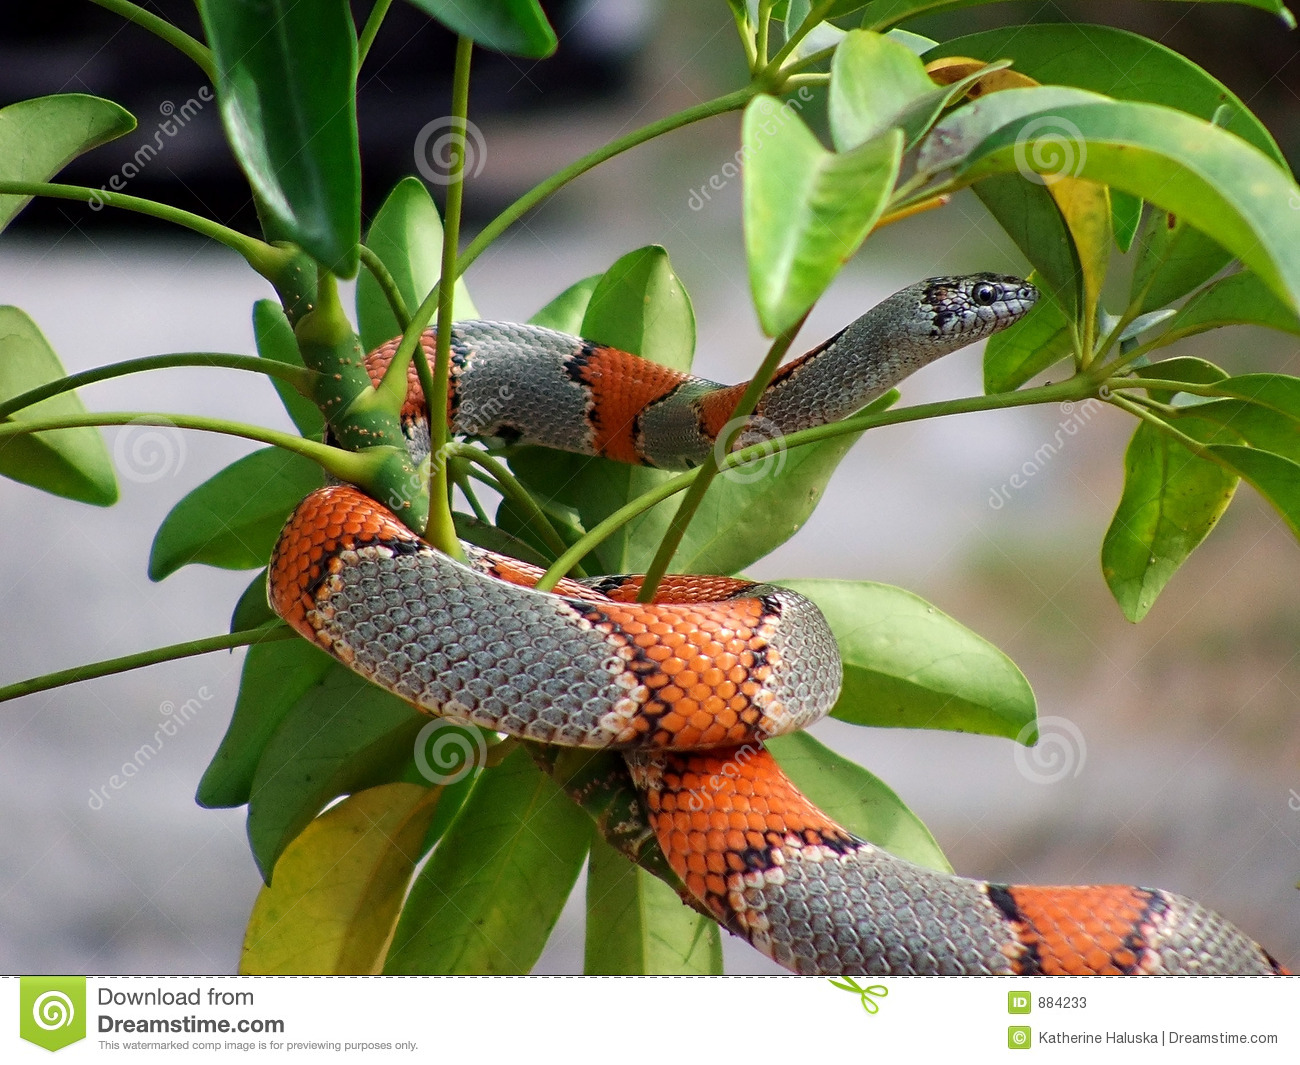 Where can i find a gray banded king snake?